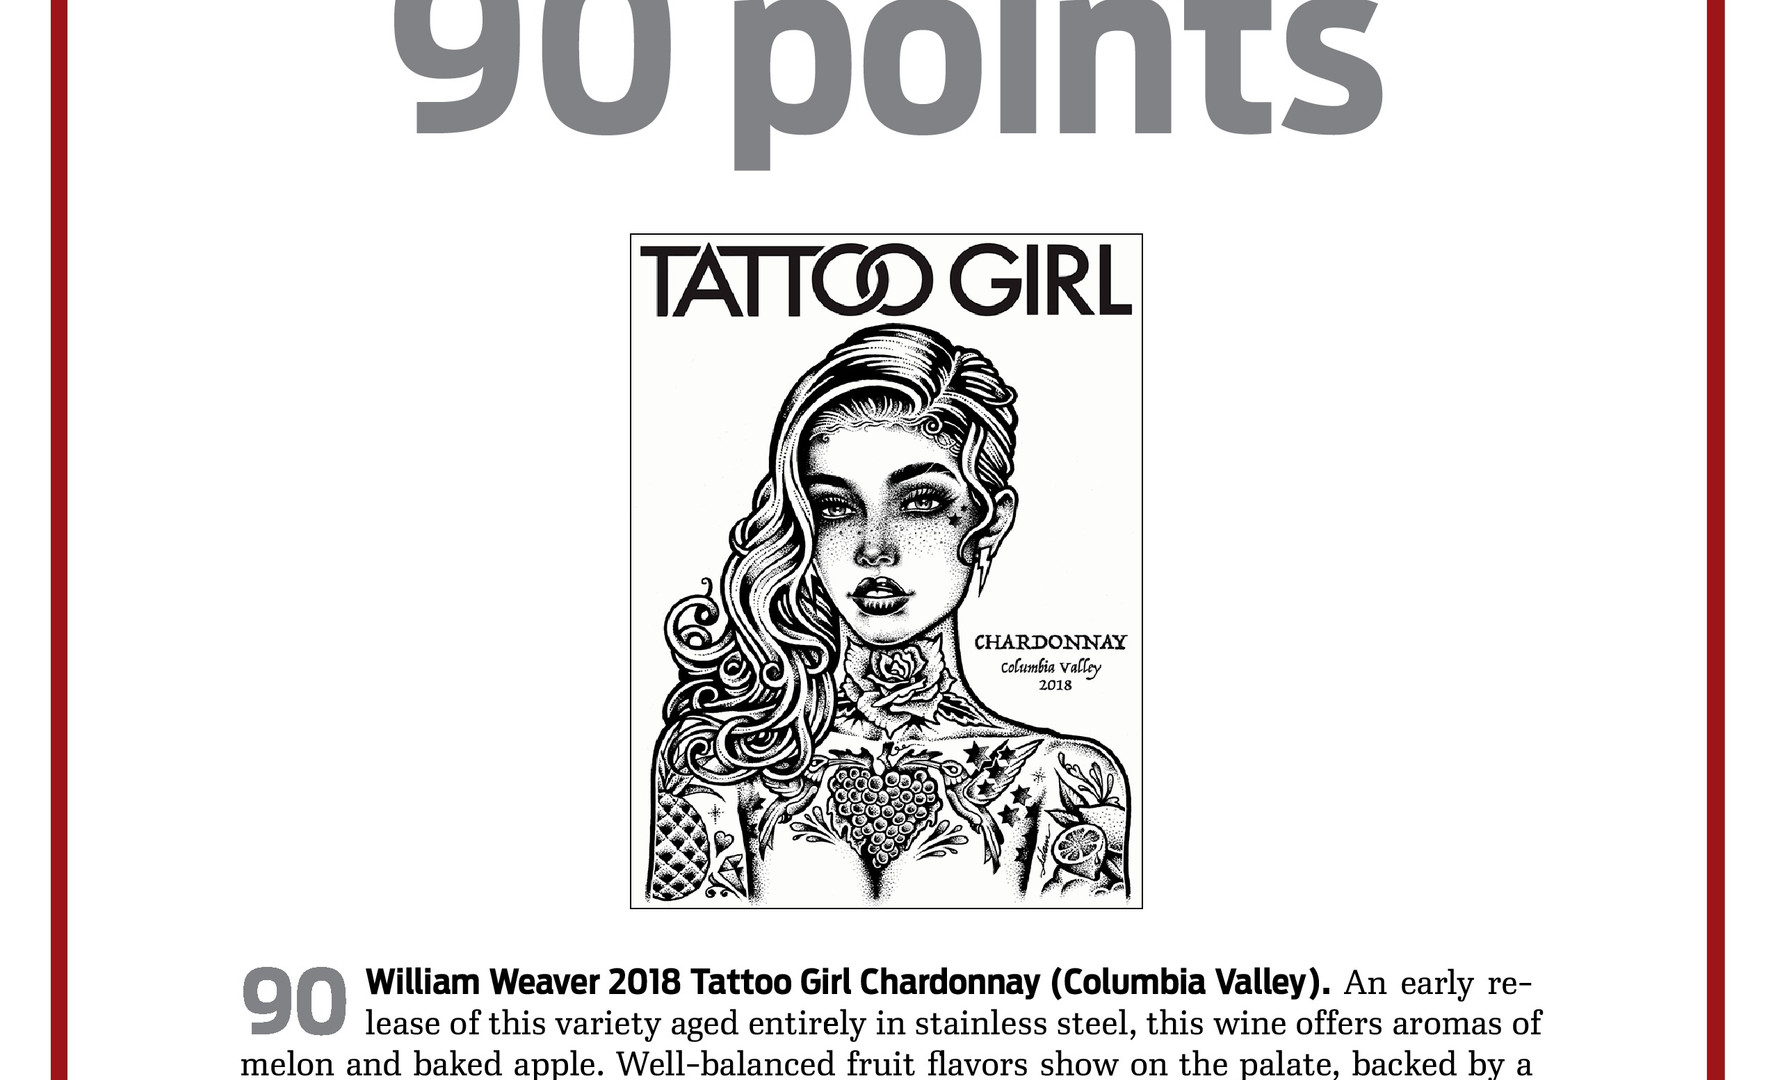 2018 Tattoo Girl Chardonnay